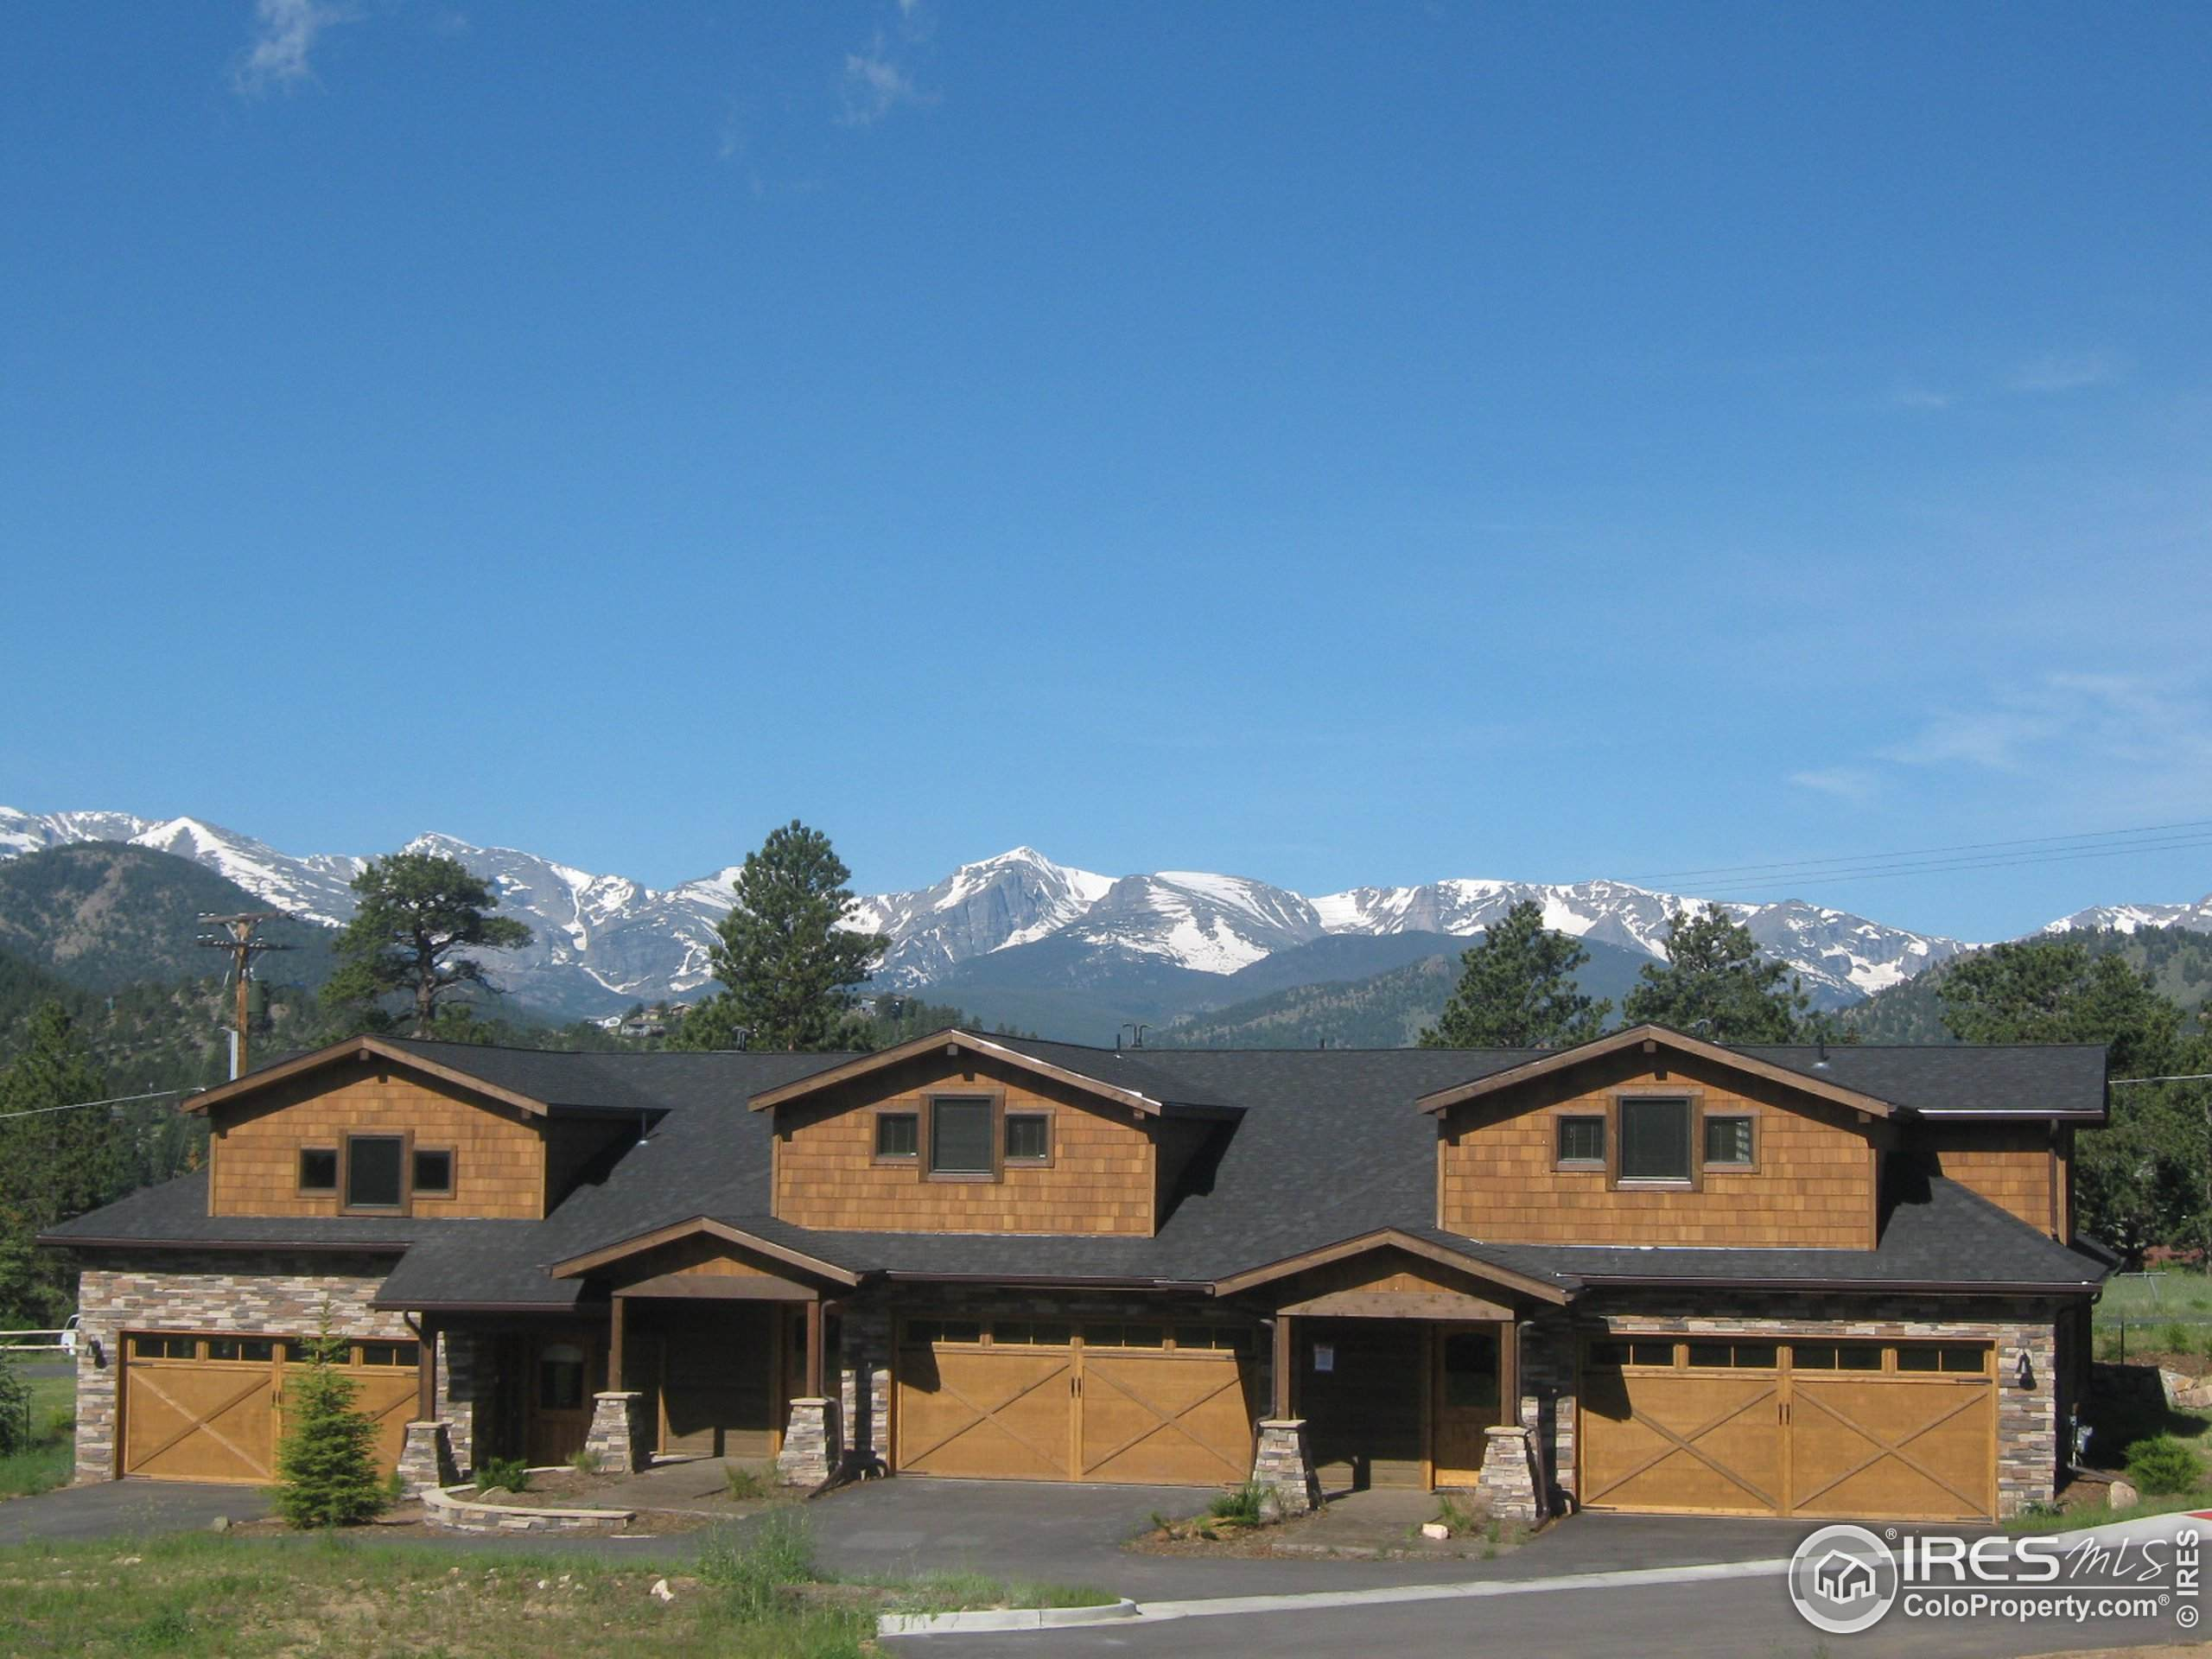 5600 W 3rd St #4, Greeley, CO 80634 (#925873) :: Kimberly Austin Properties